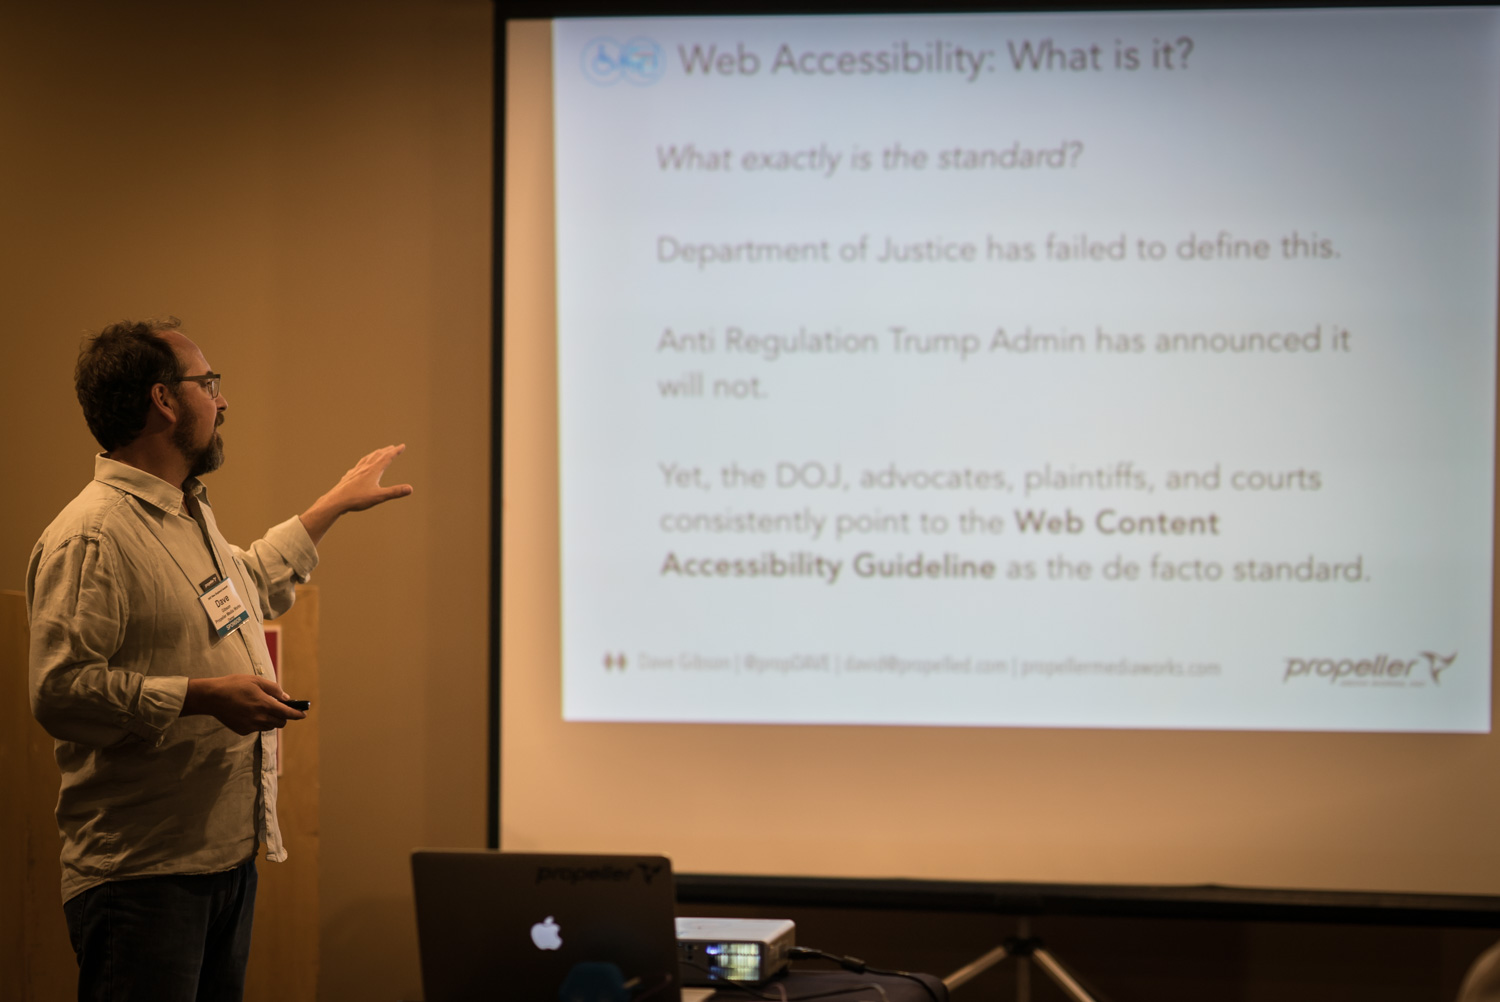 Dave Gibson speaking on web accessibility